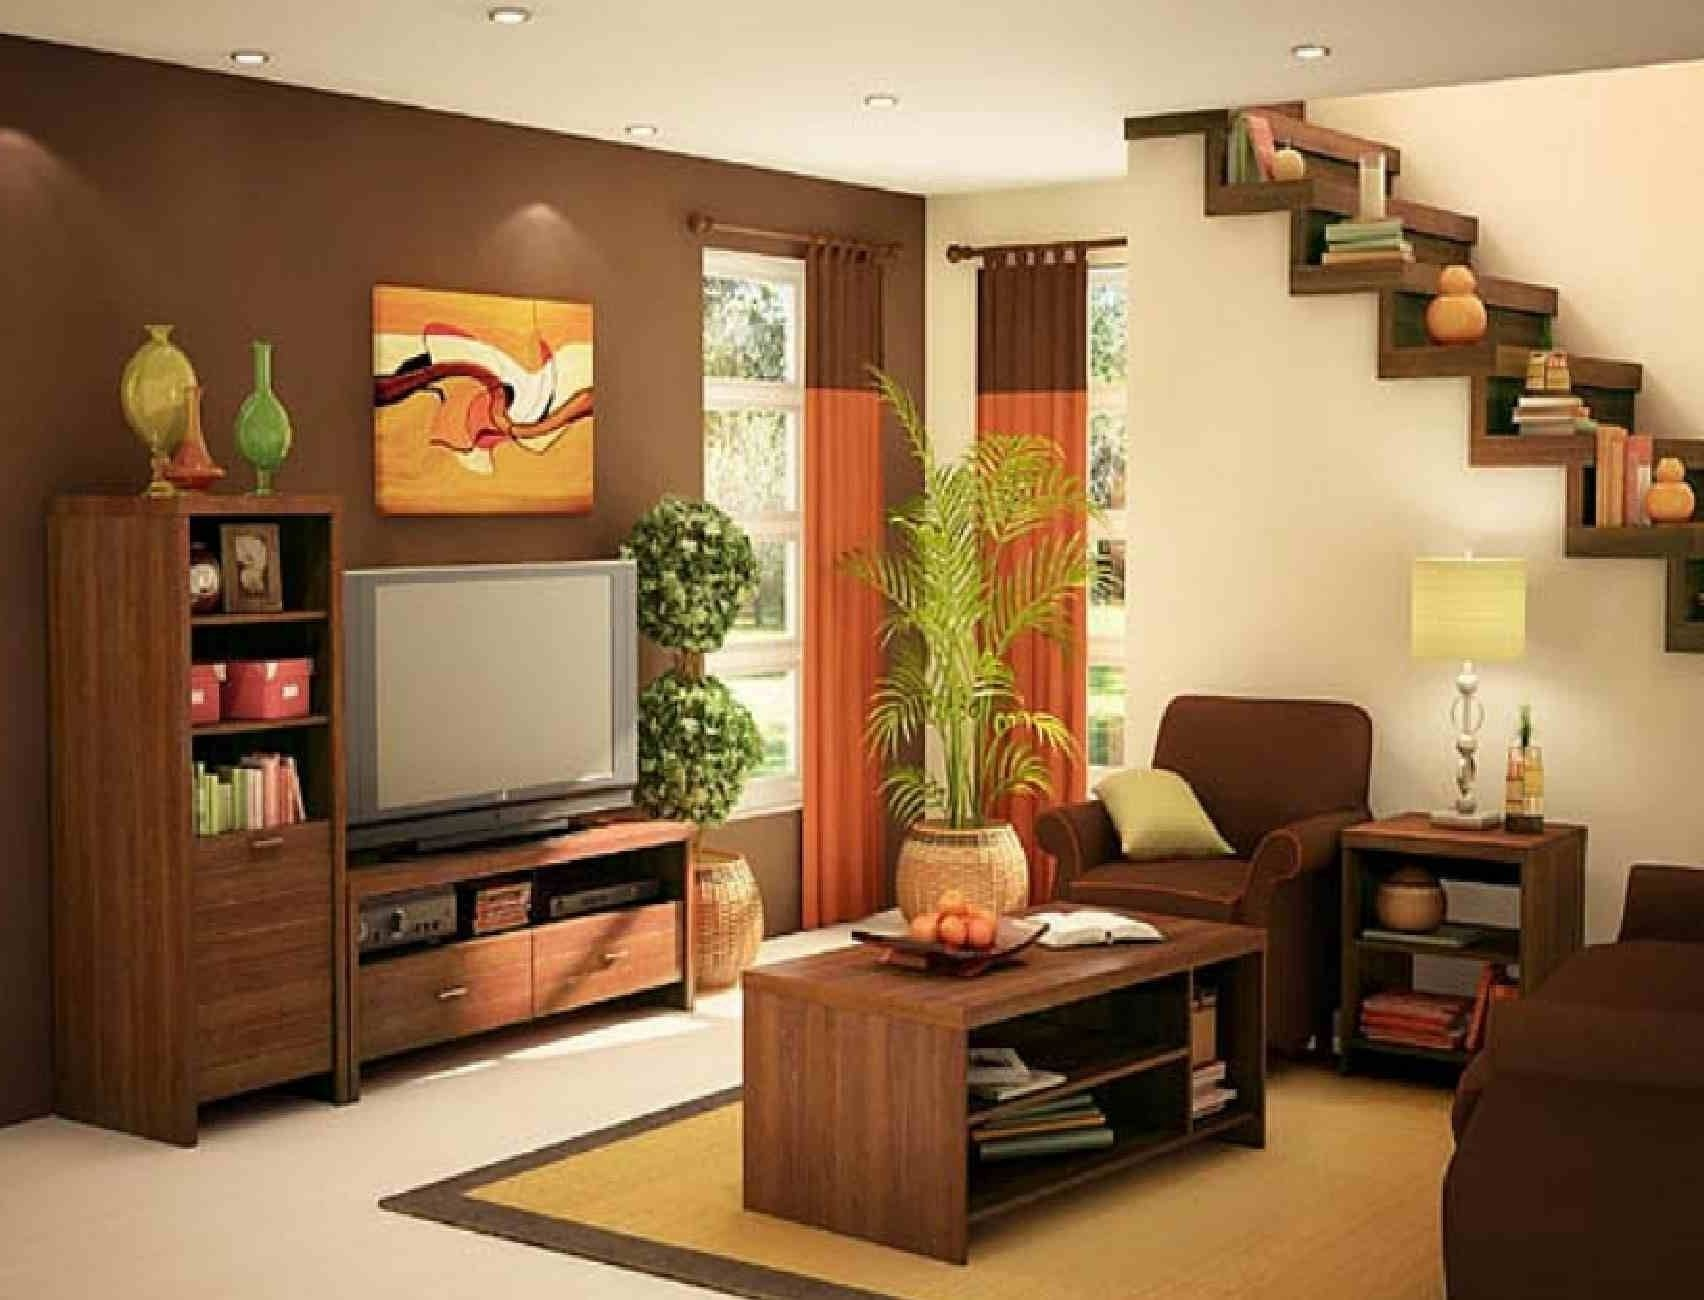 10 Best Simple Living Room Decorating Ideas living room contemporary simple living room under the stairs 2020